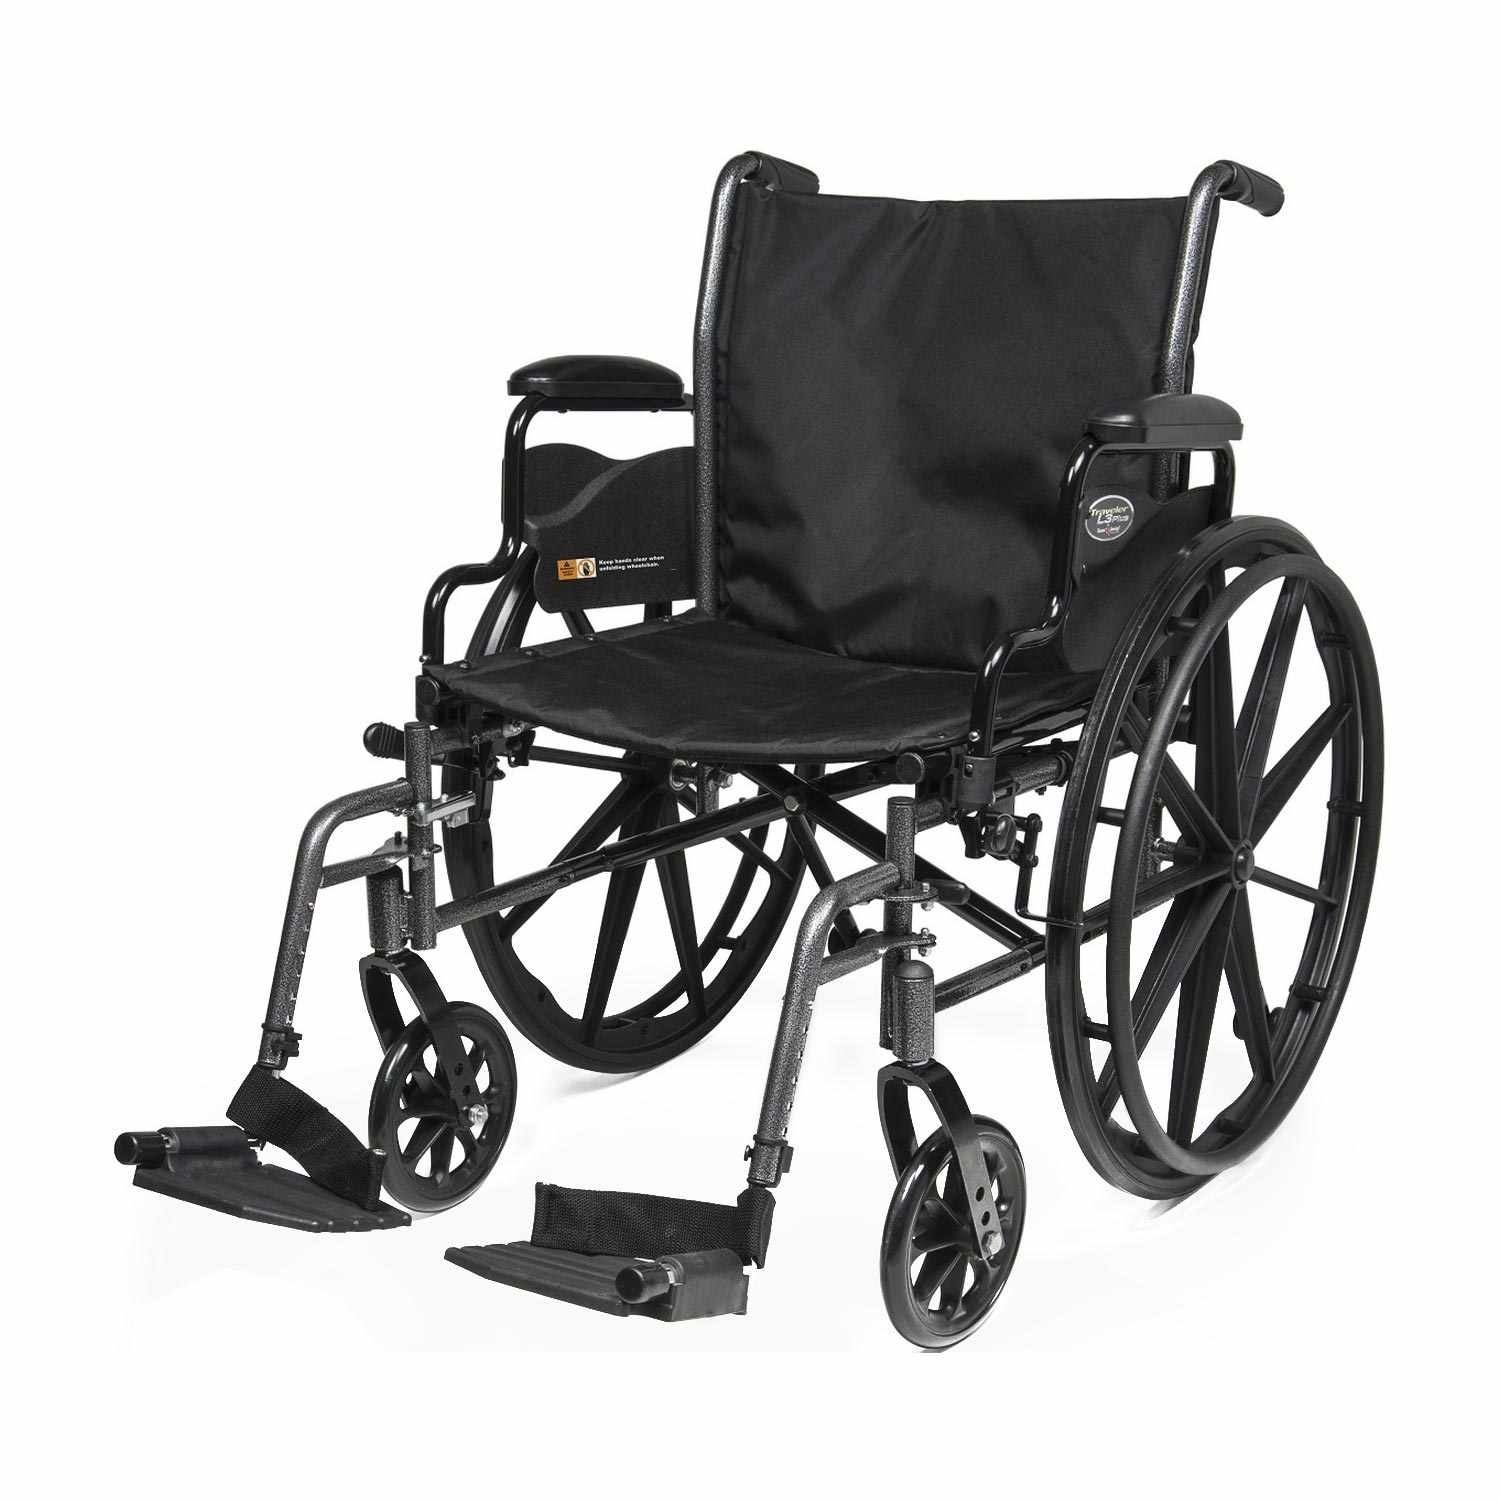 Everest & jennings Traveler L3 plus wheelchair with elevating legrest